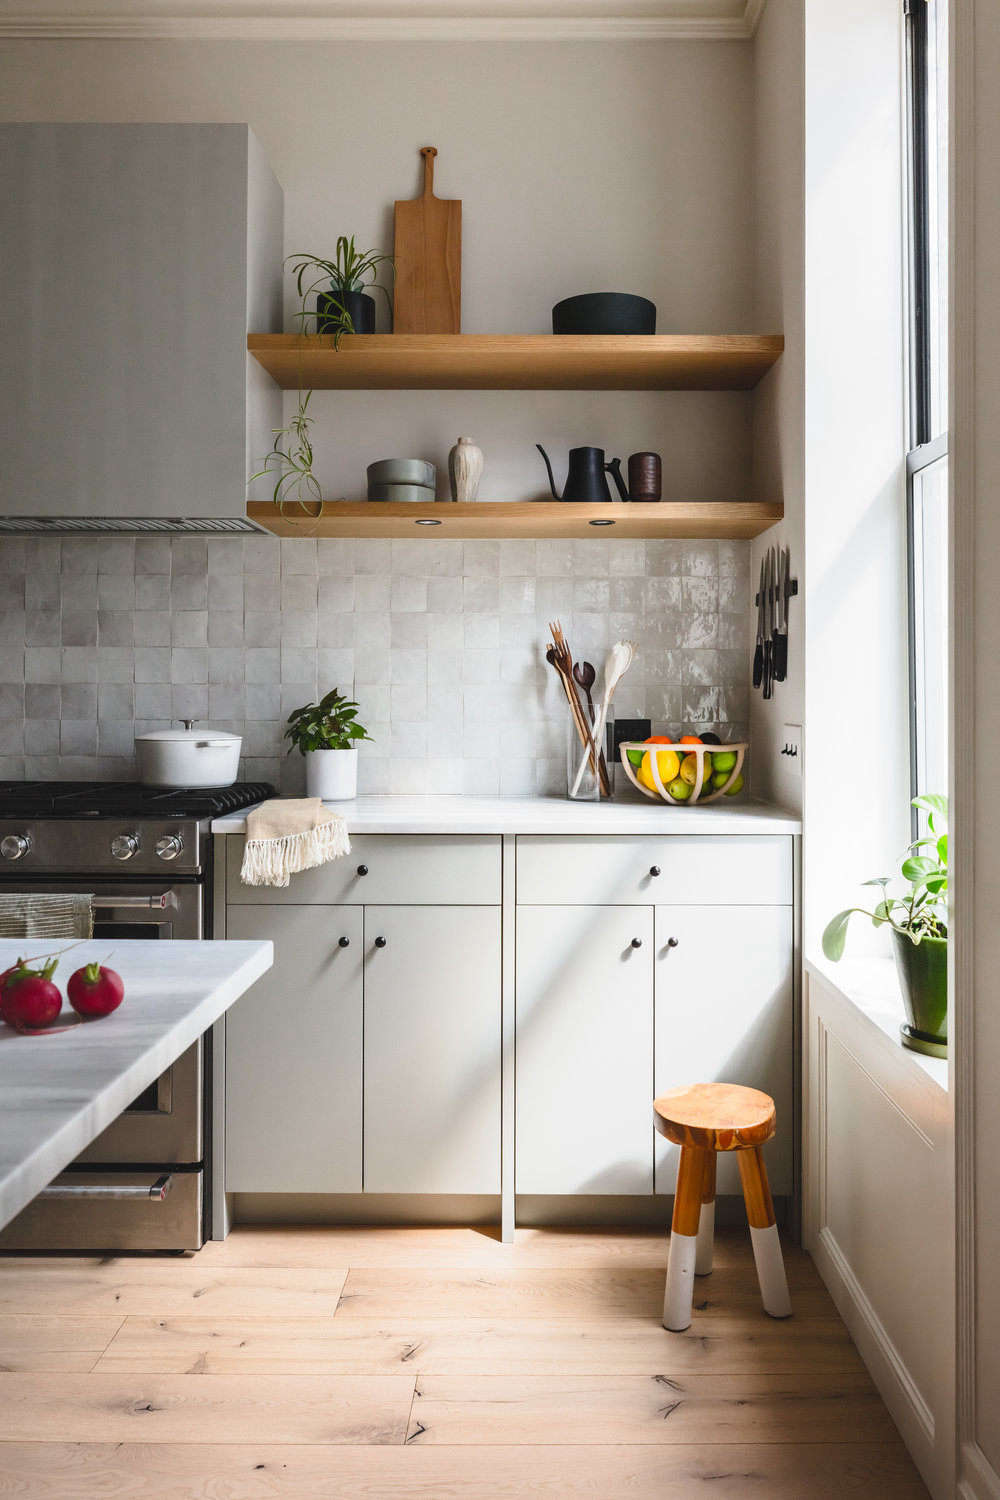 The counter and open shelves are reserved for a few kitchen tools, such ascutting boardsand wooden spoons by Allison Samuels of Two Trees Studio and aTerracotta Fruit Bowlby Virginia Sins. Dishes and the couples&#8